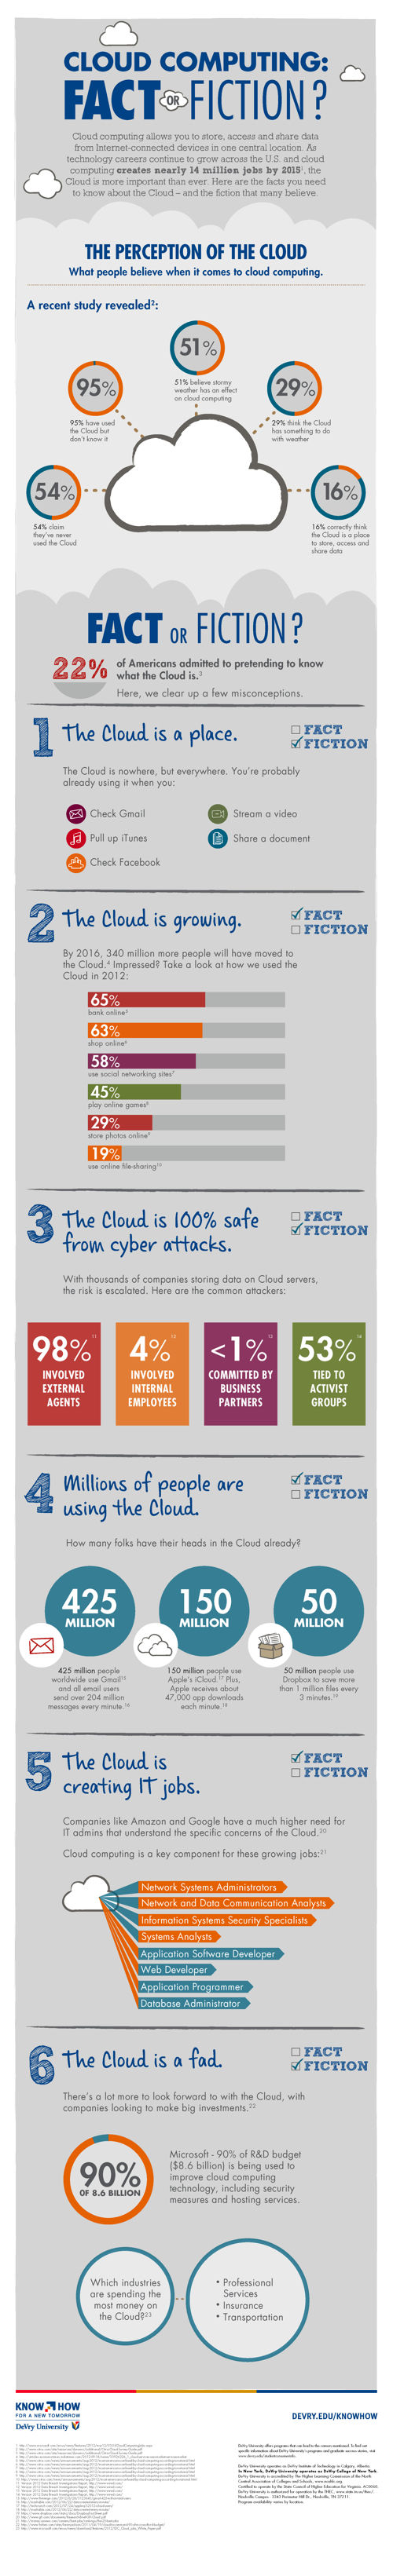 Cloud-Computing-Fact-Or-Fiction